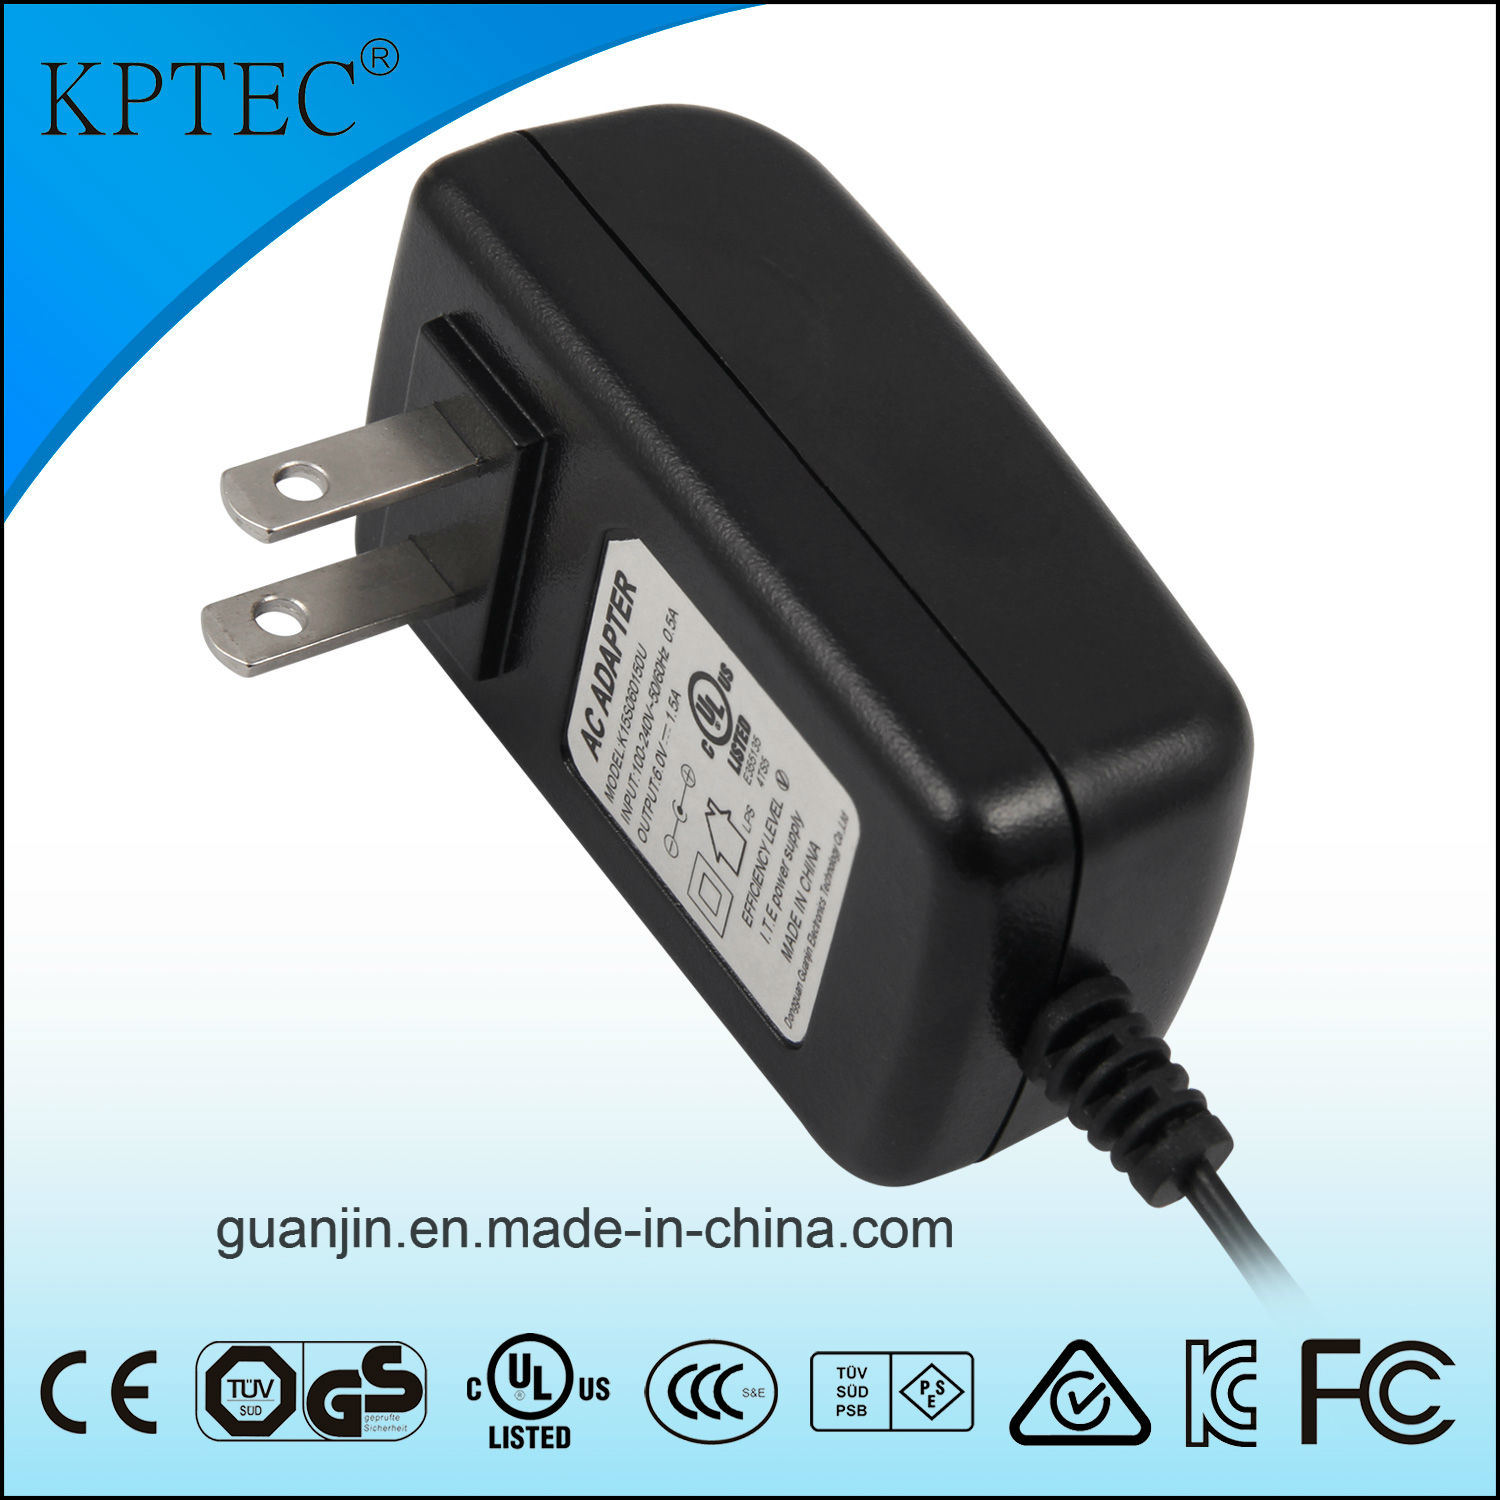 Kptec Us Plug Charger with 12V UL RoHS Certificate